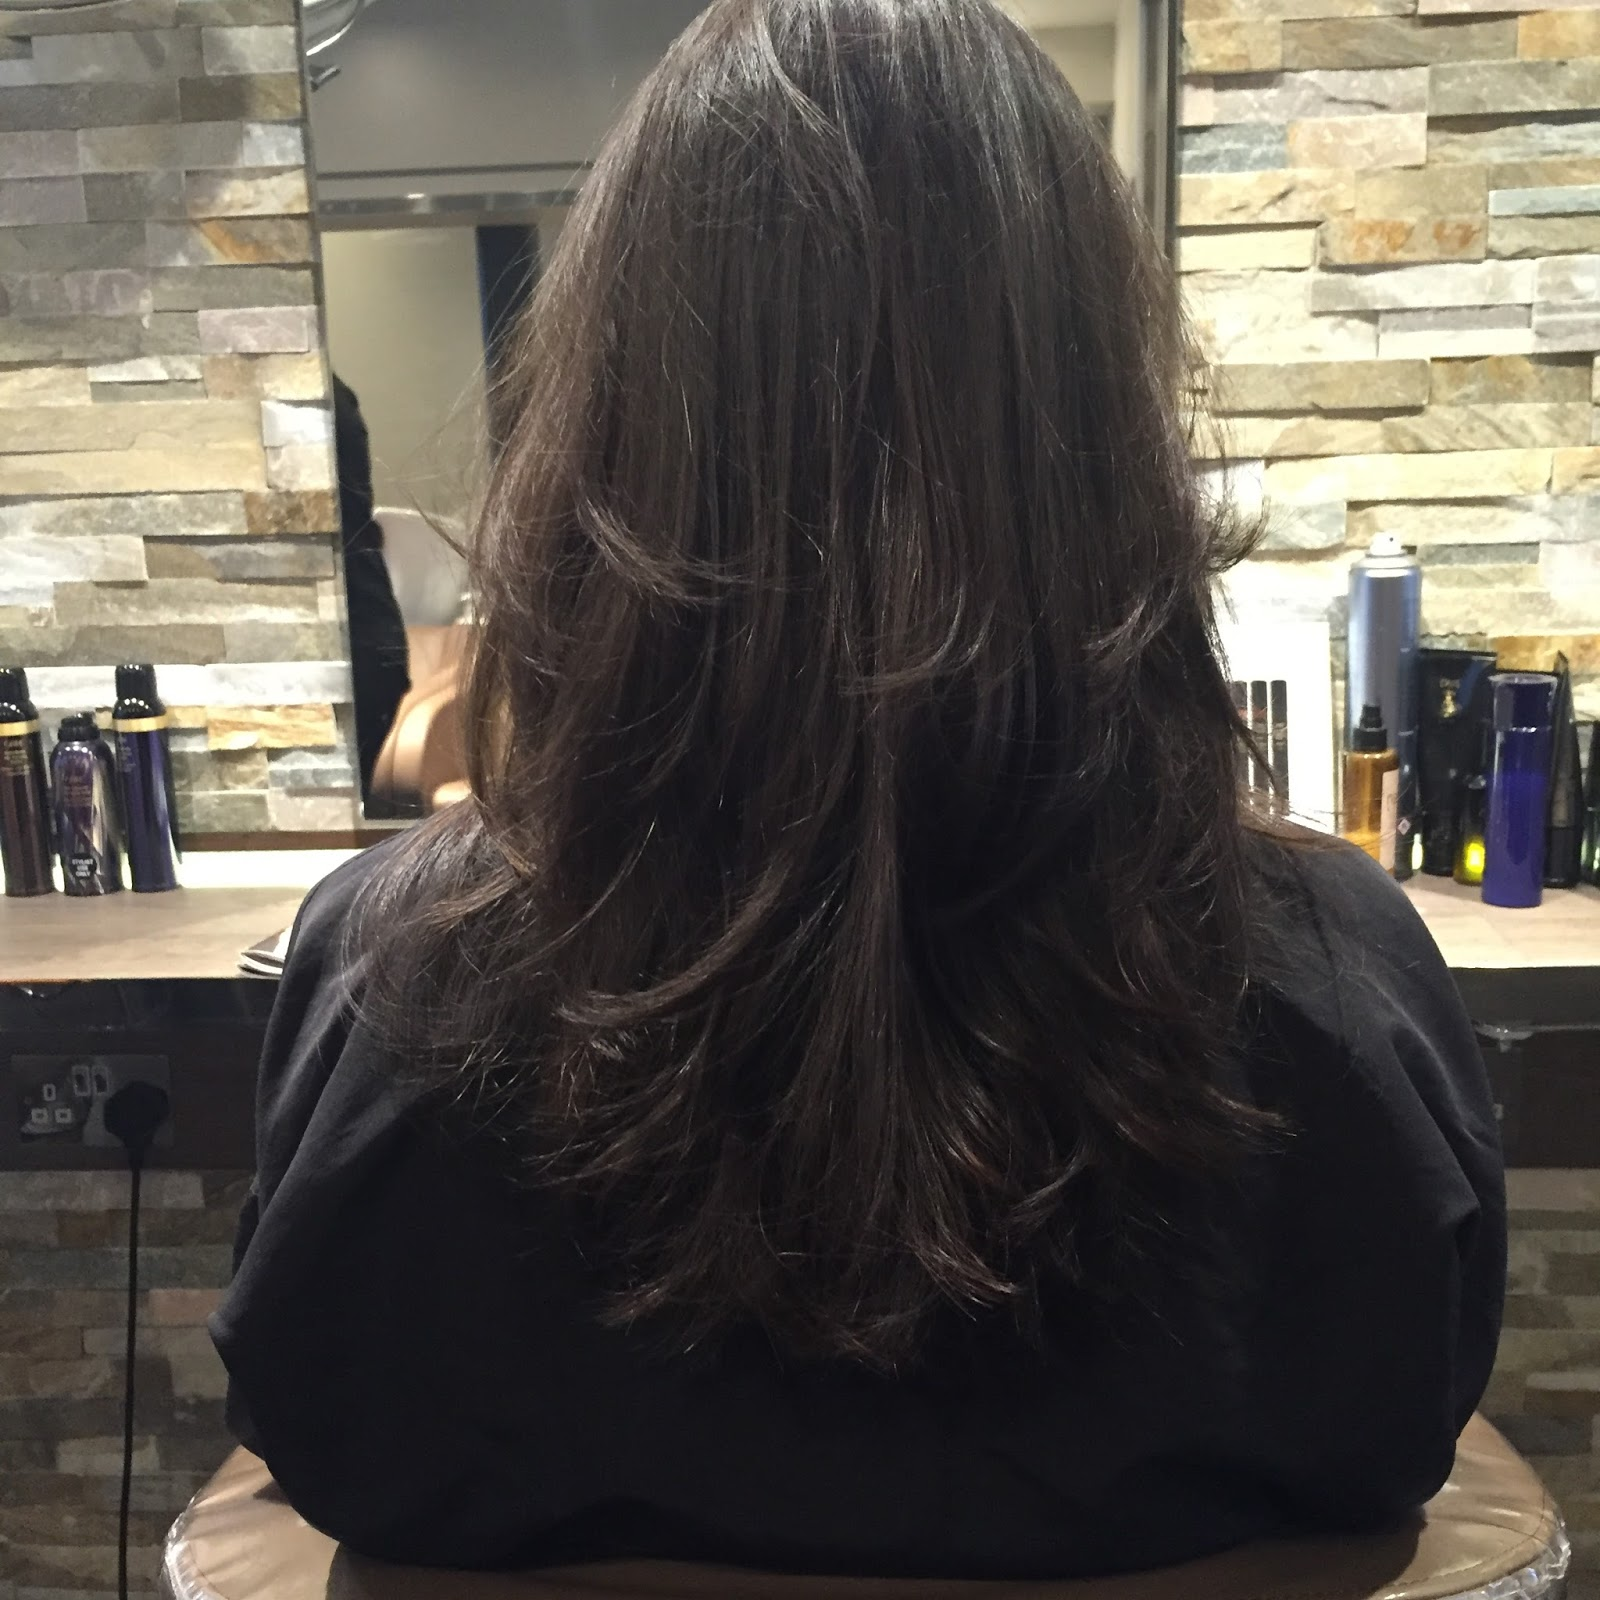 peexo haircut and blowdry at RYS hair and beauty via Ruuby app